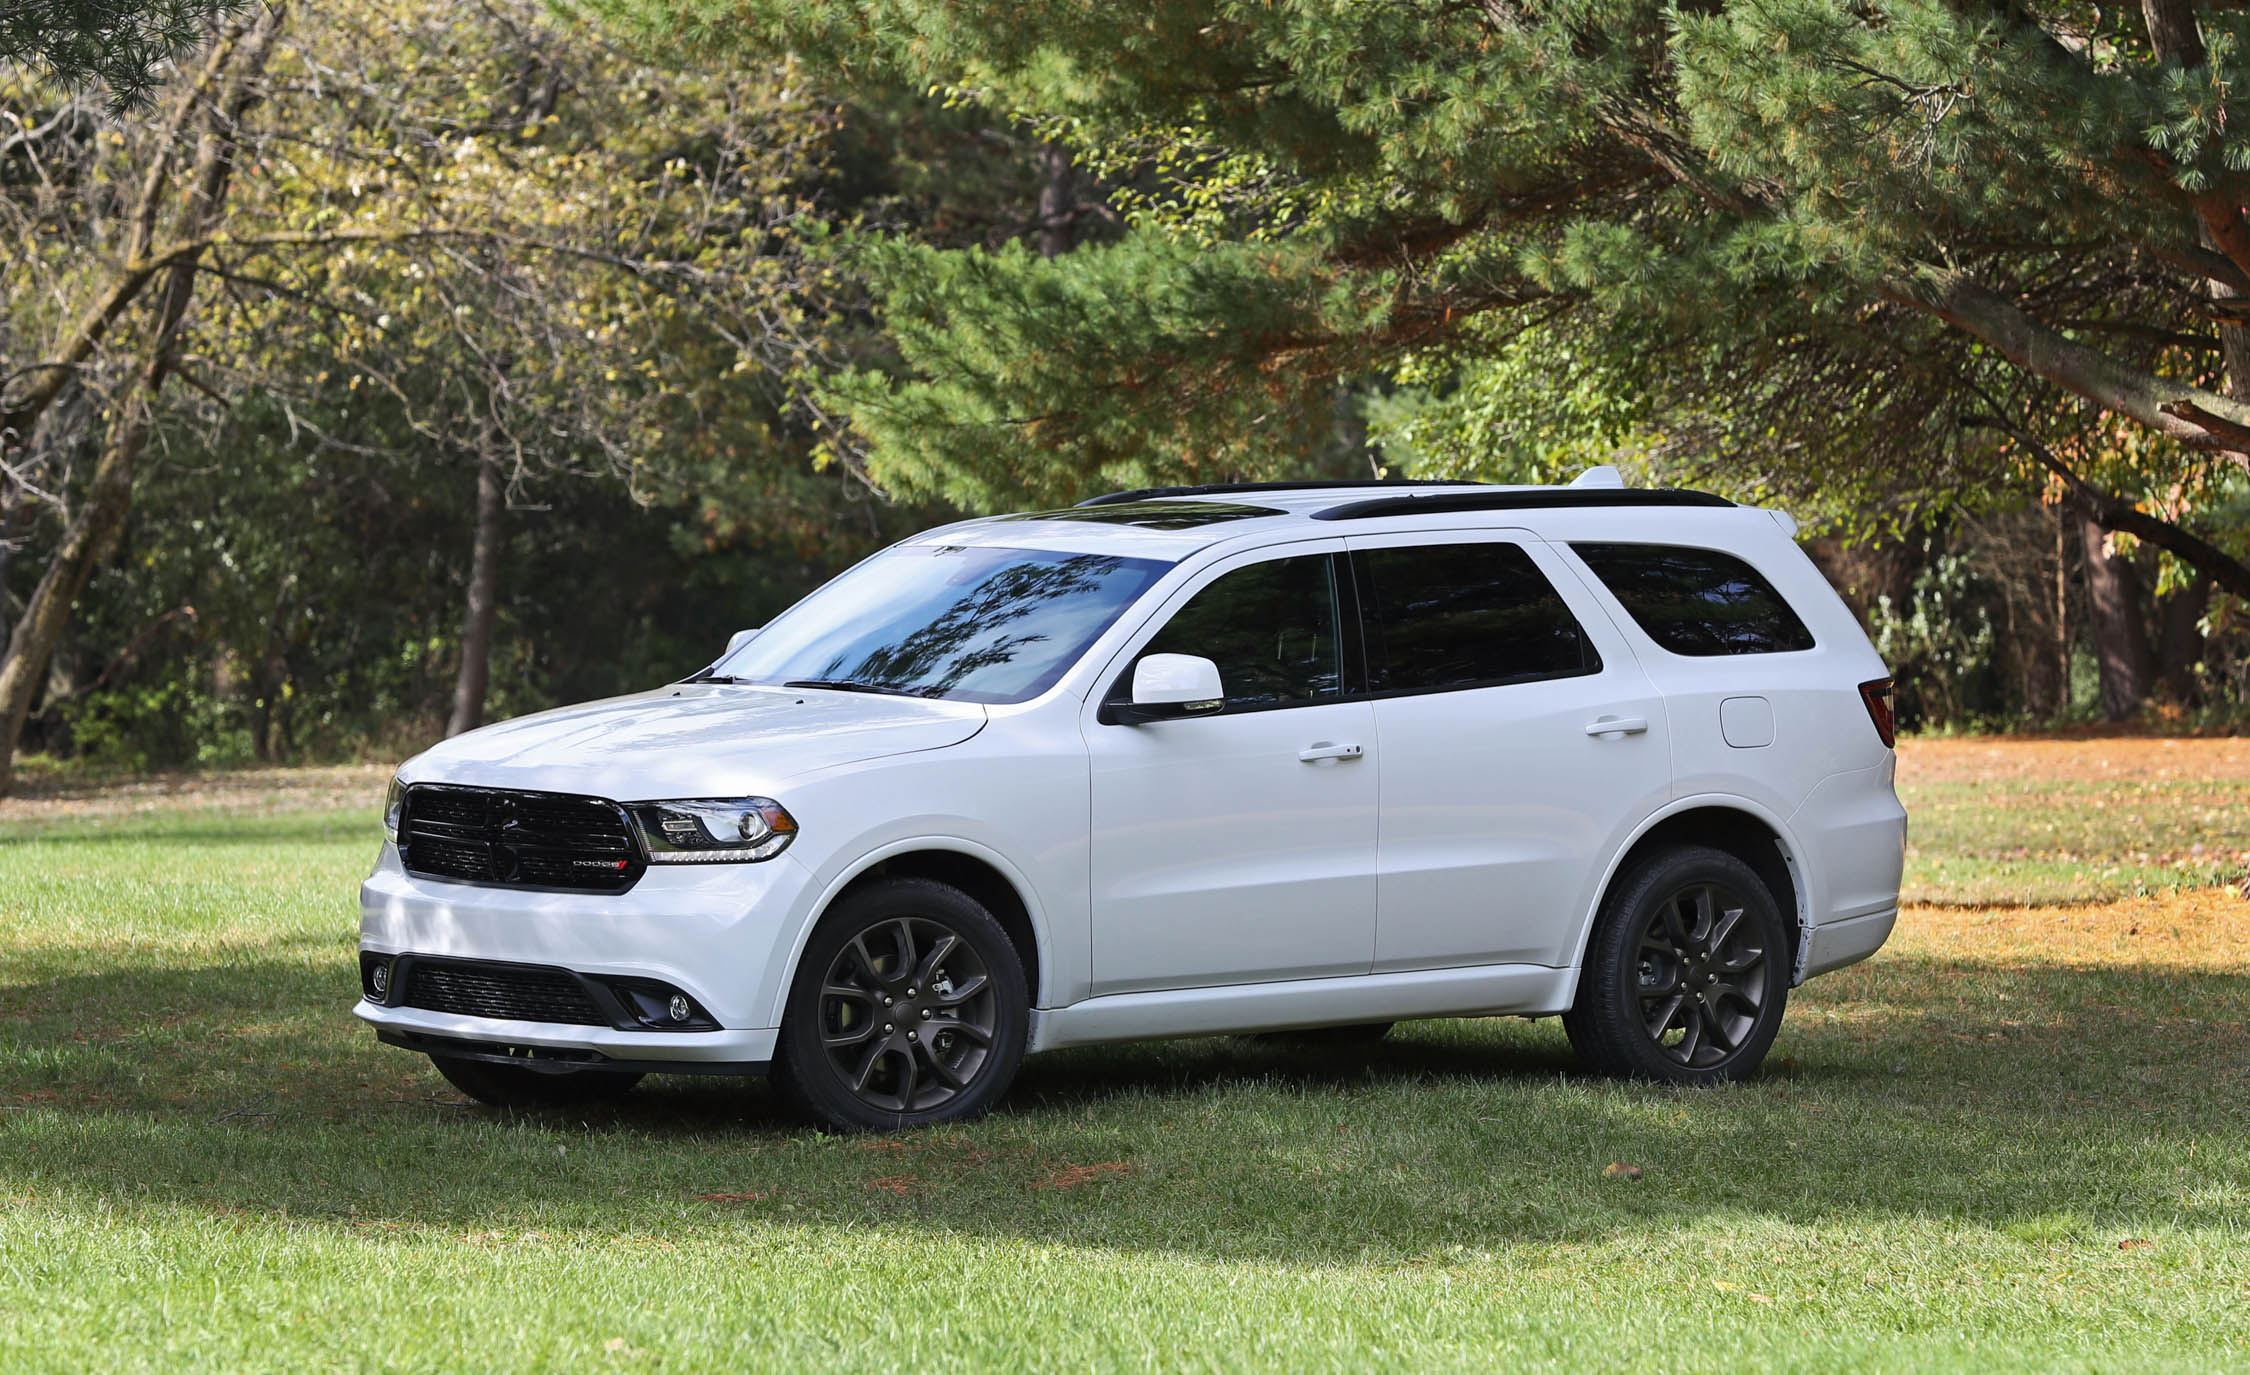 2017 Dodge Durango GT AWD (Photo 5 of 12)